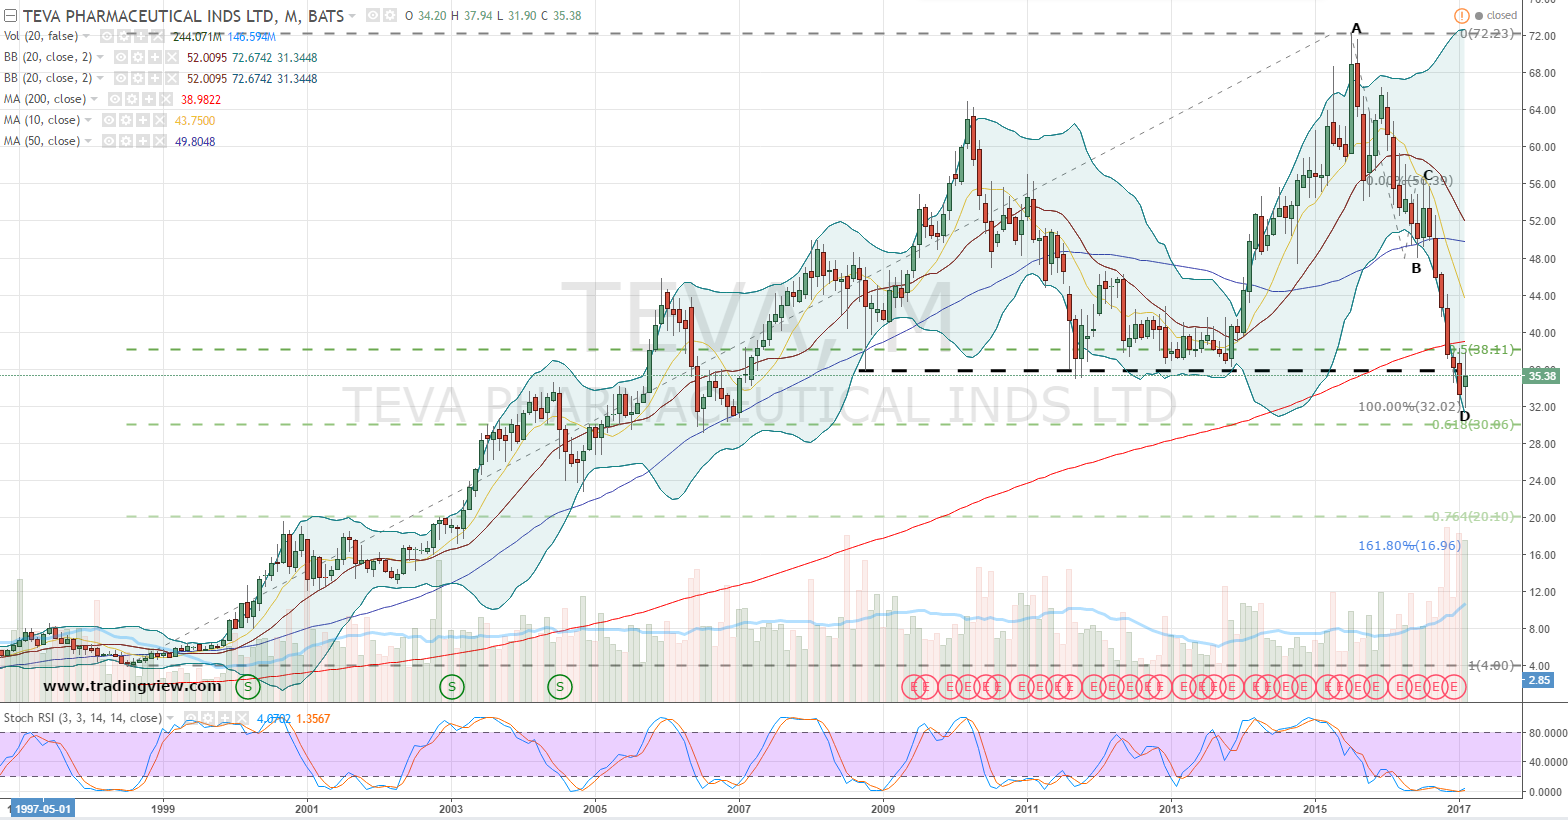 Investors Catching Stocks: Teva Pharmaceutical Industries Limited (NYSE:TEVA)